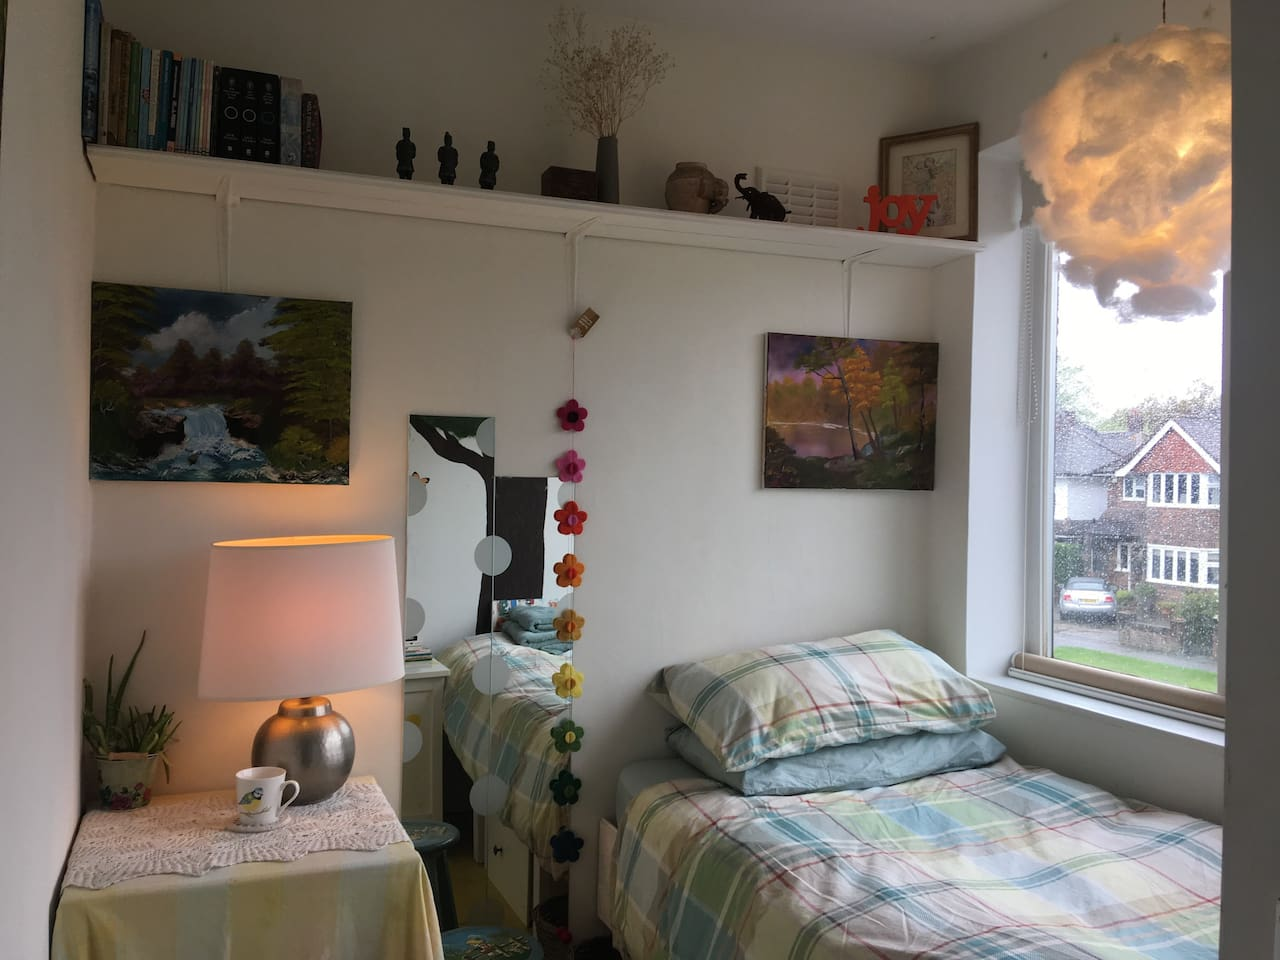 Calm arty single bedroom with original oilpaintings, soft lamp, shelf, desk, stool, drawers, mirror, radiator, books and aloe vera (helpful for sleep)